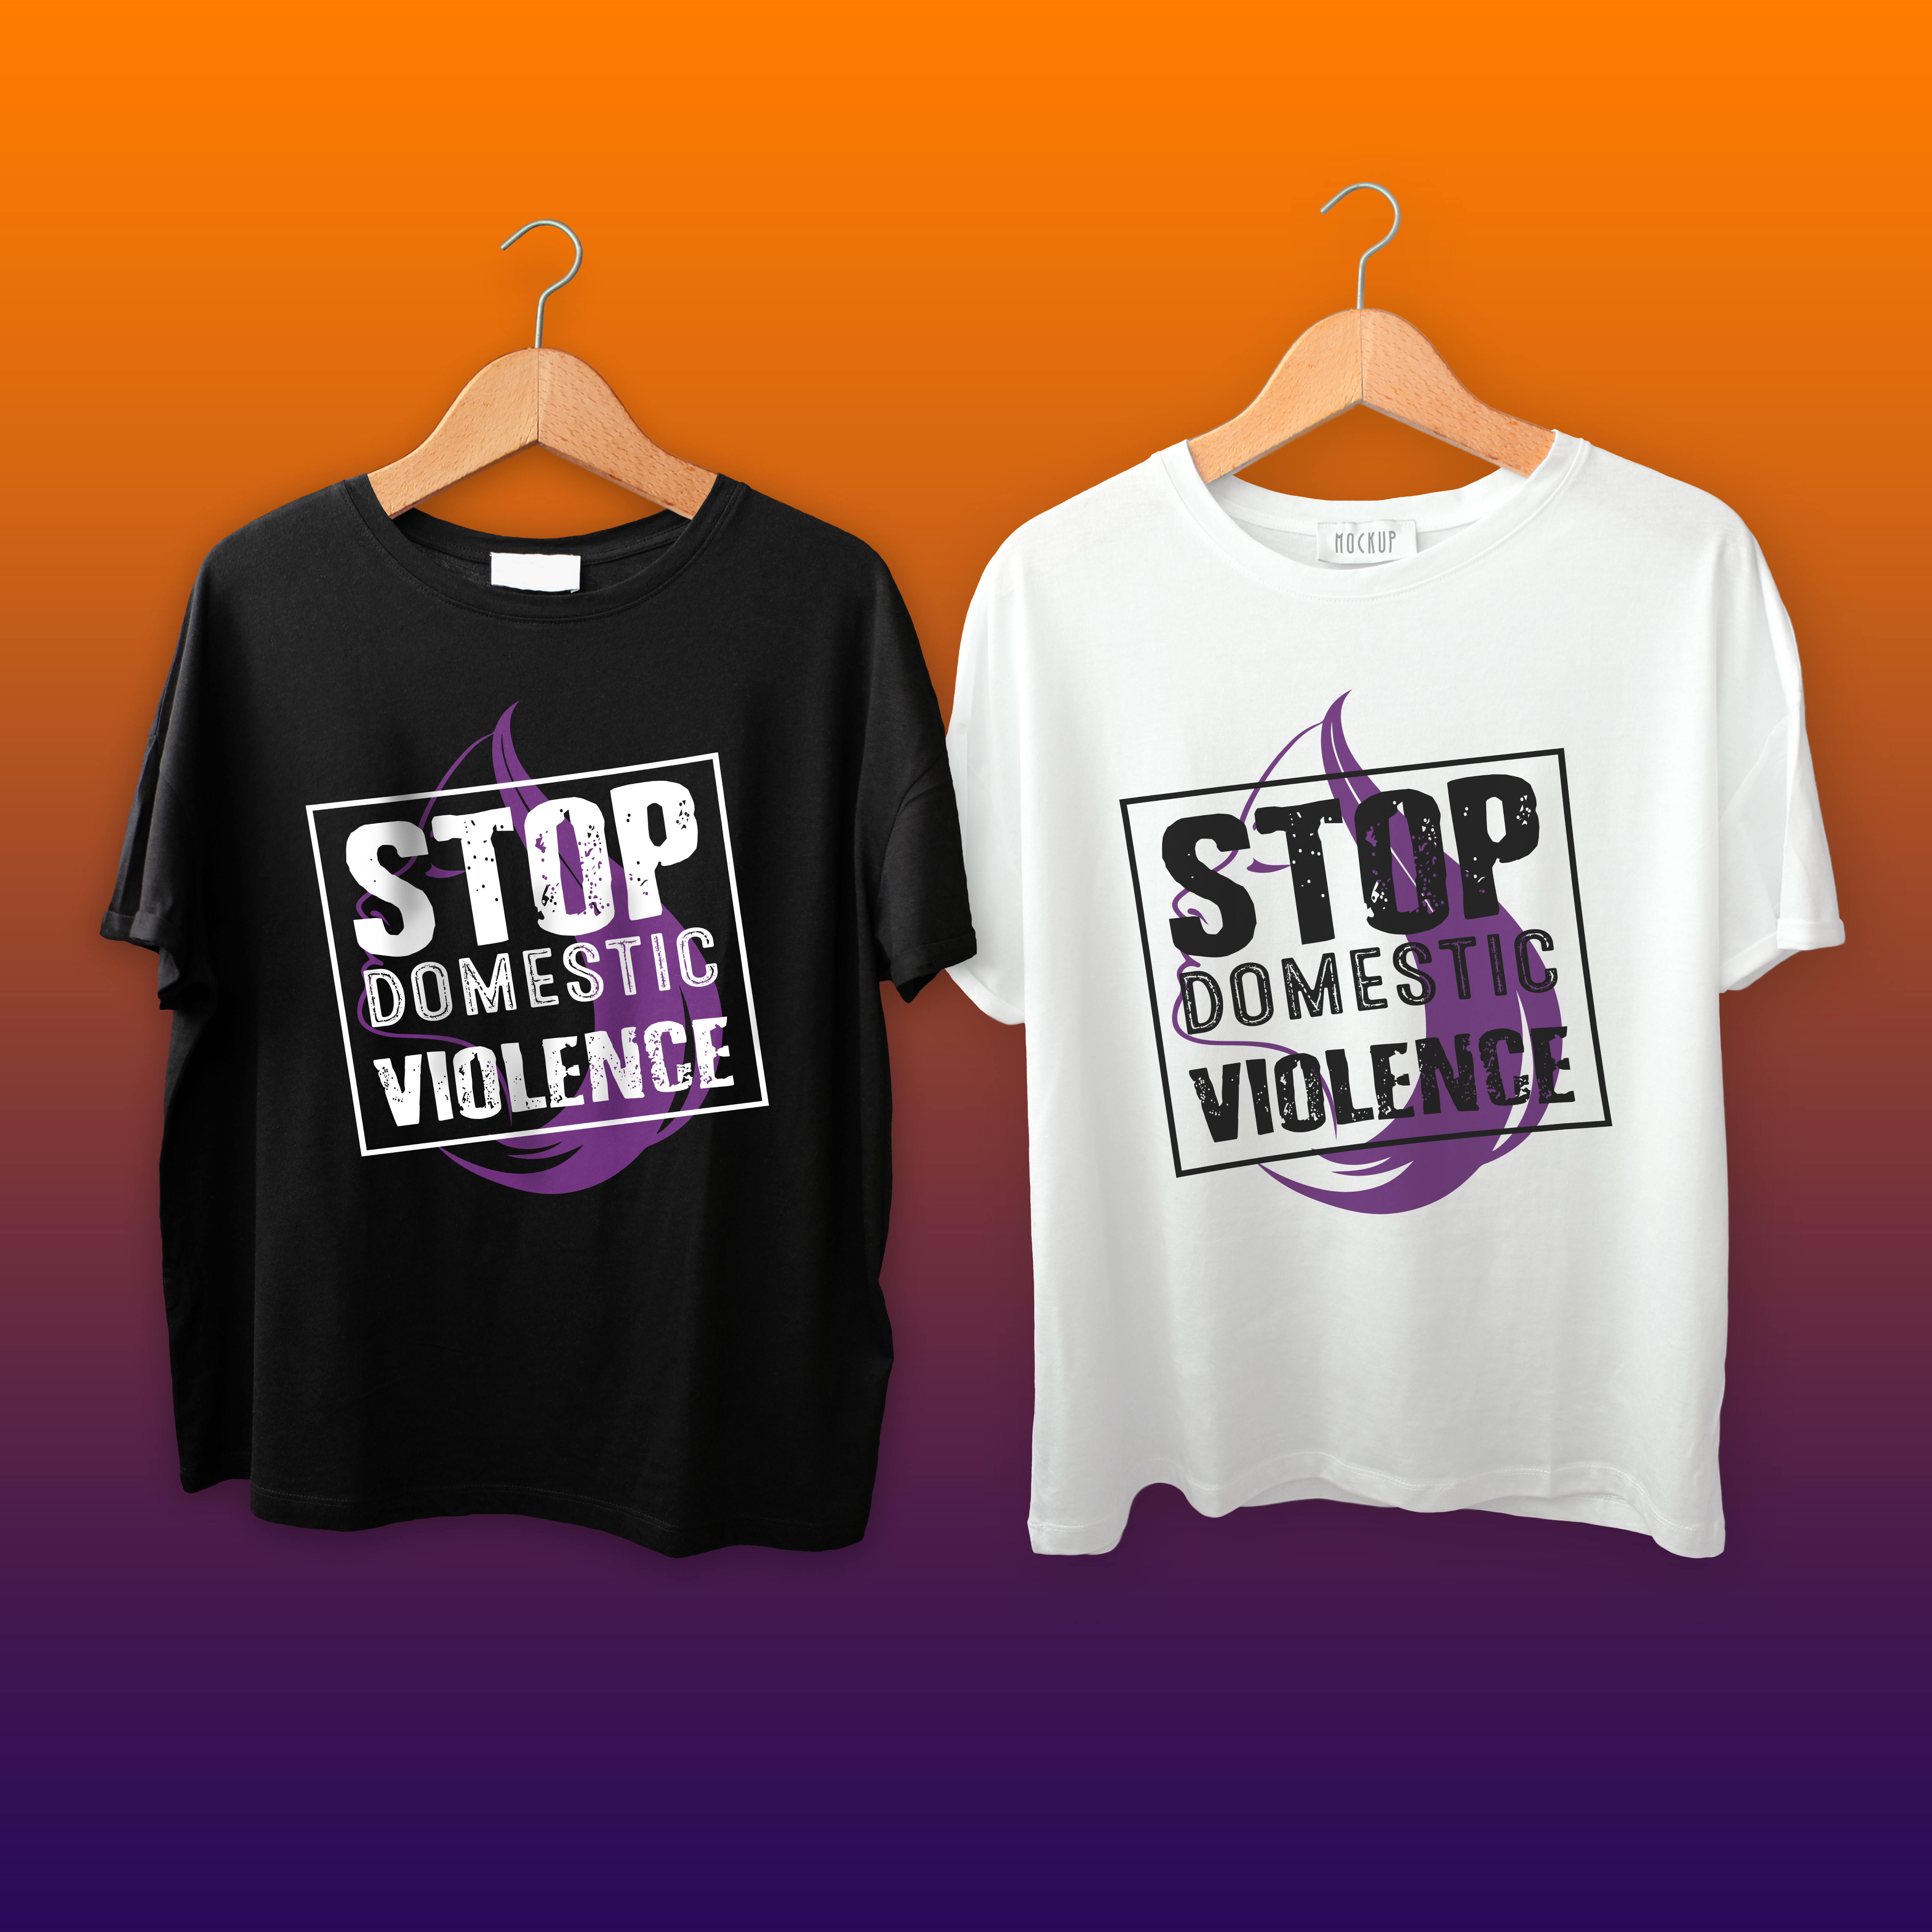 I will design Awesome Modern Tshirts for any Campaign or brand